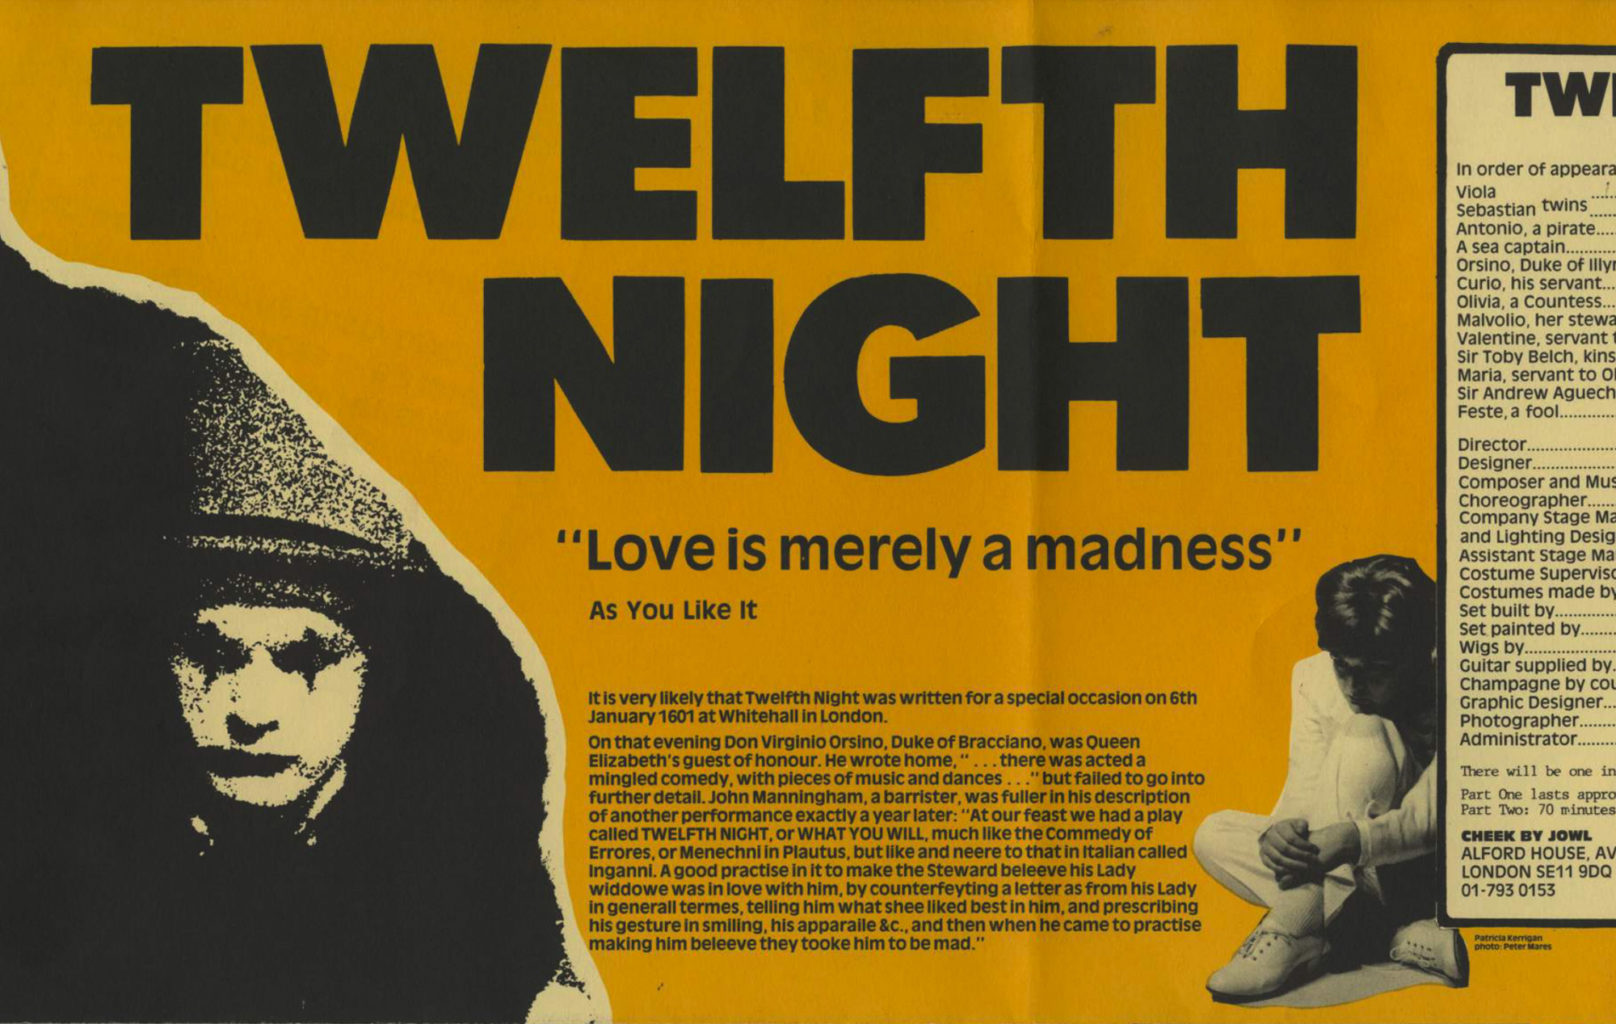 Programme for Cheek by Jowl's 1986-1987 production of Twelfth Night